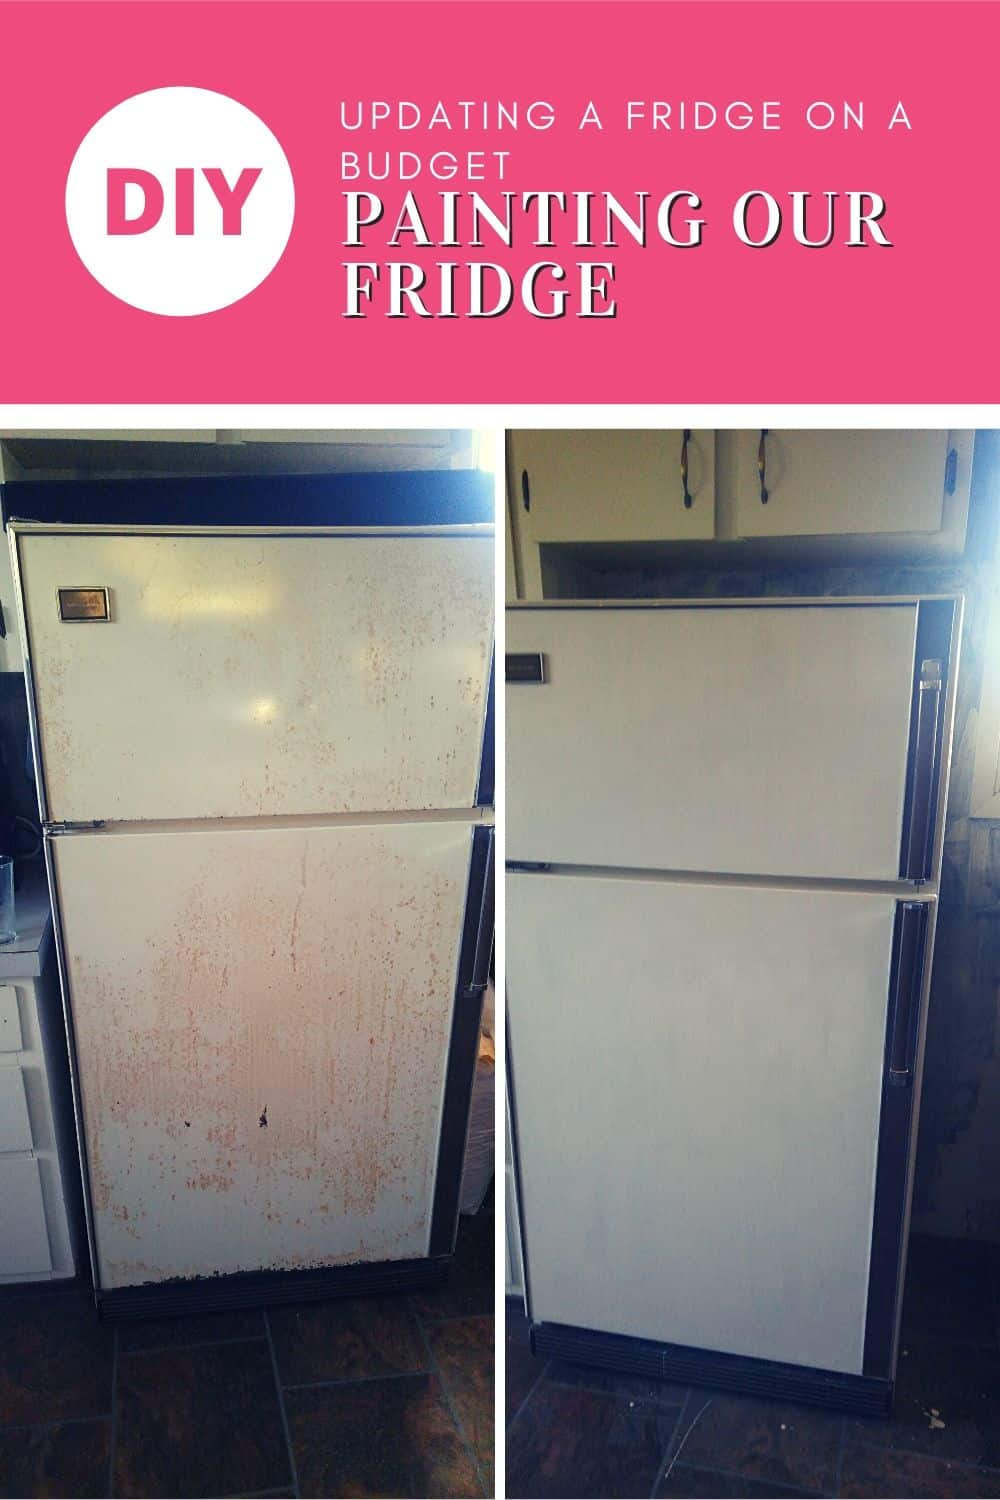 Updating a Fridge on A Budget - Painting Our Fridge - before and After